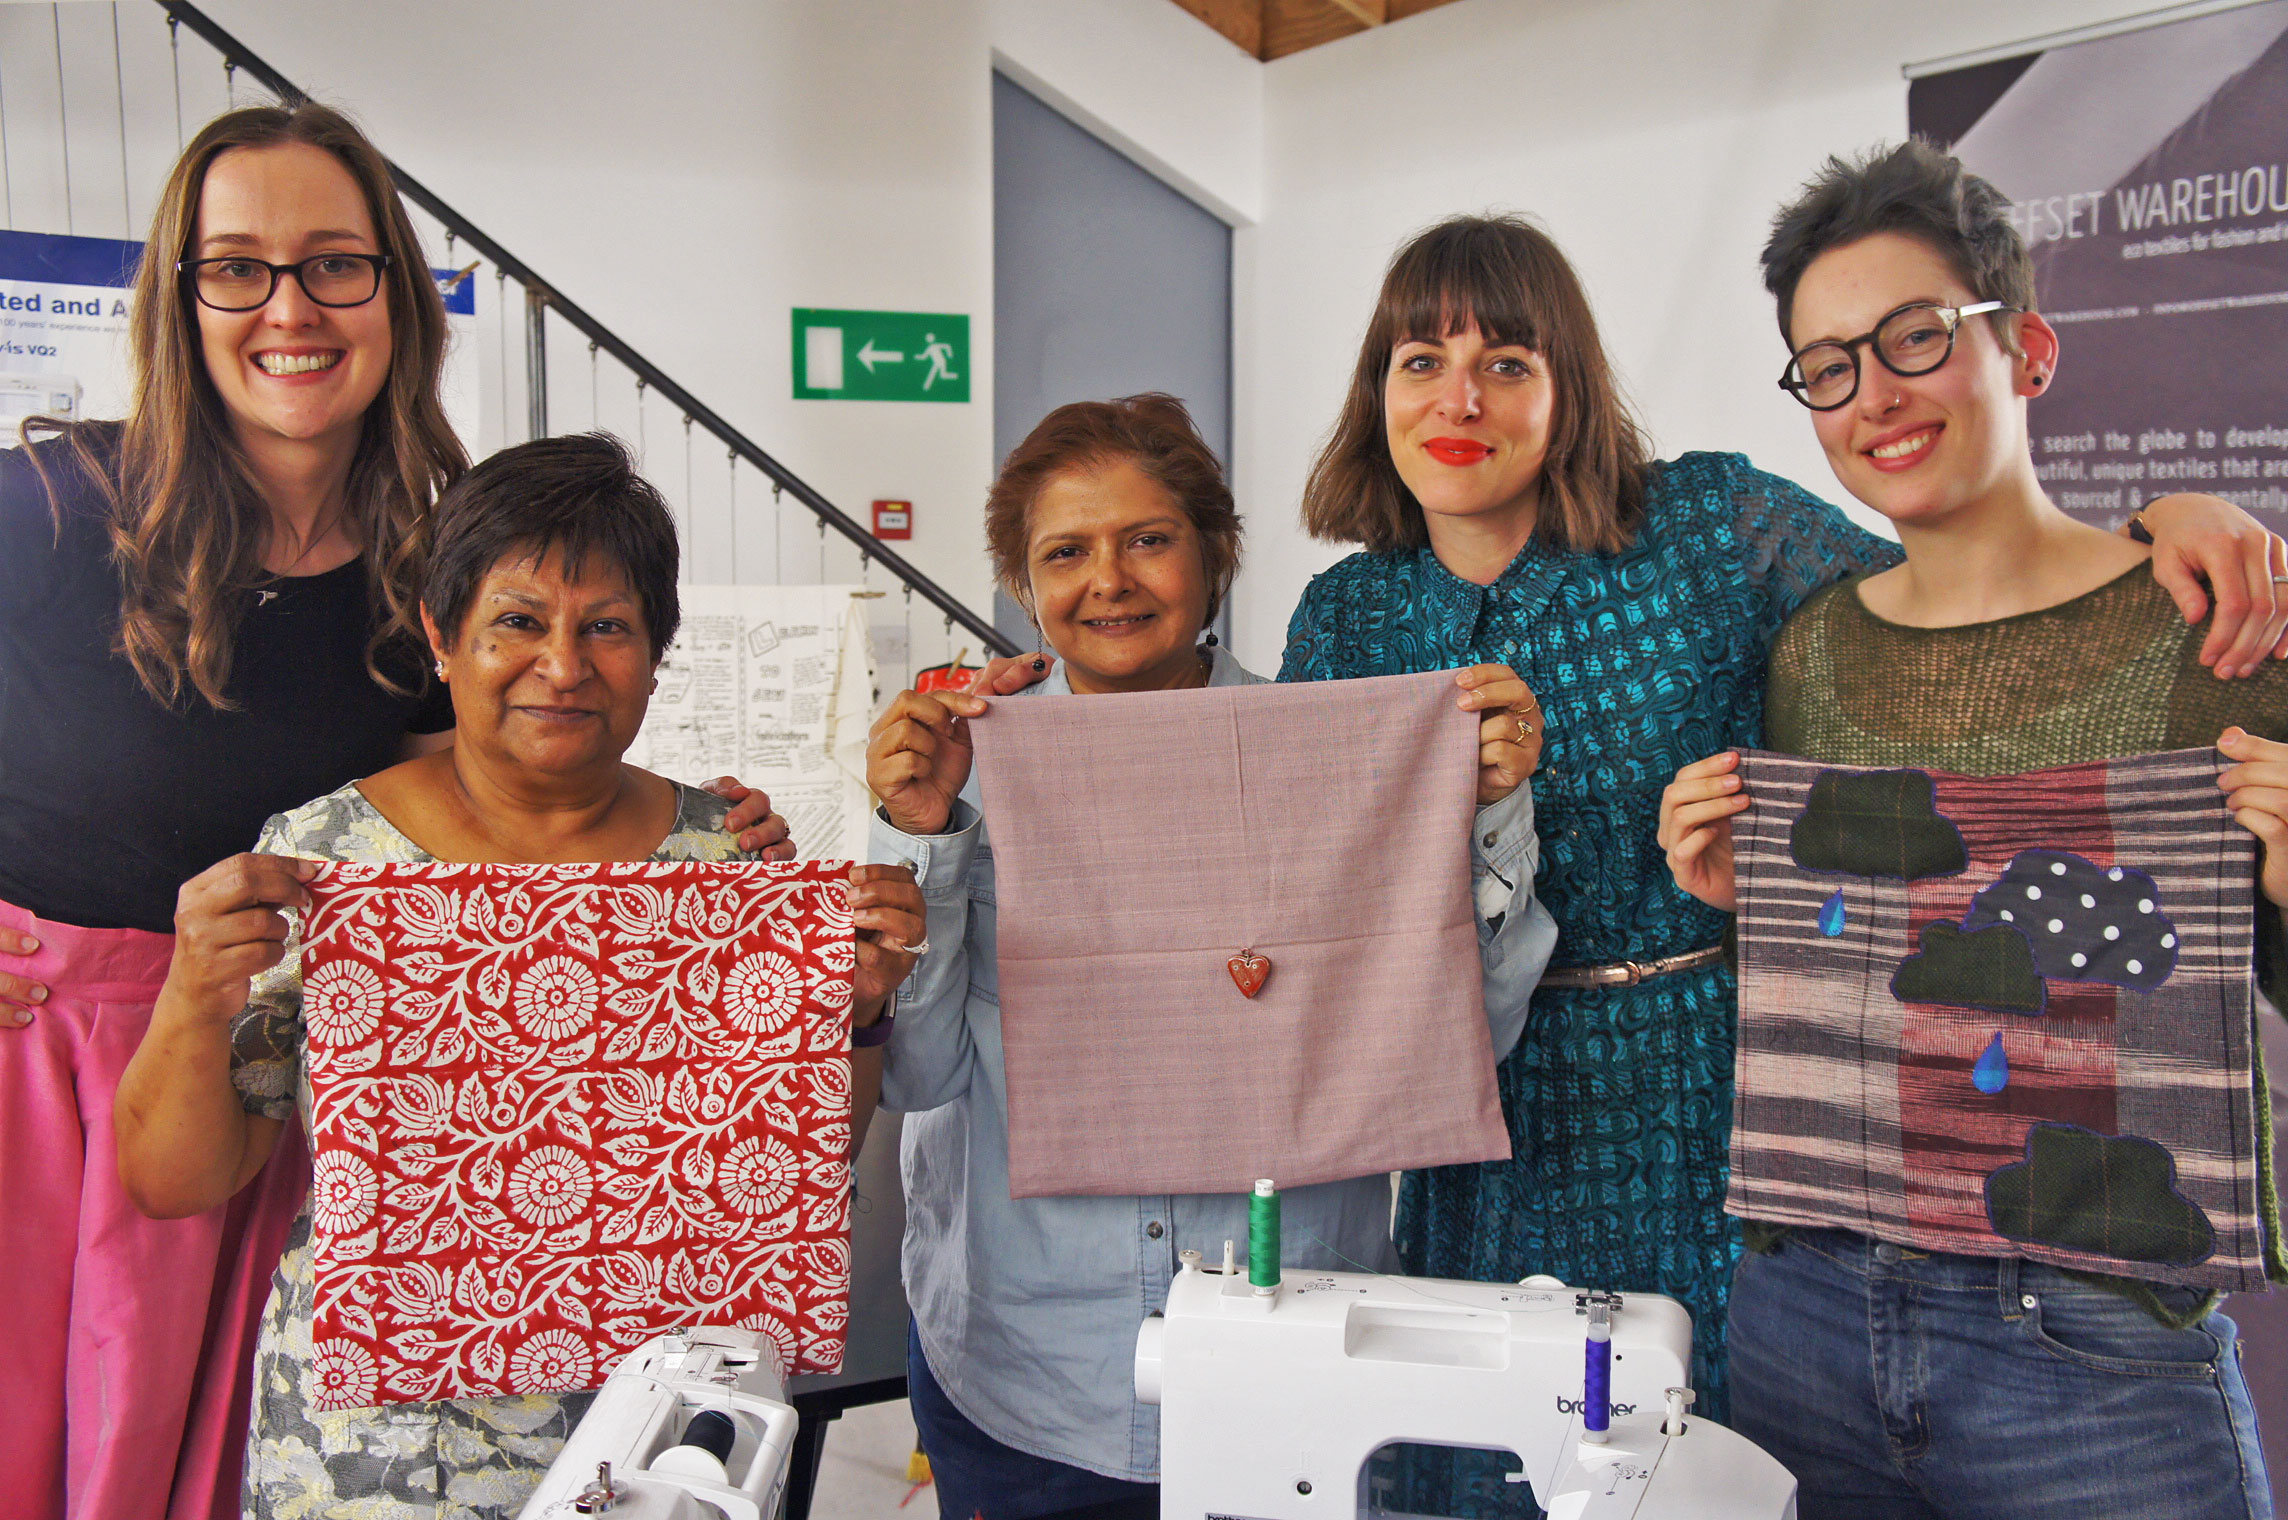 eco fabric sewing party Offset Warehouse Fabrications